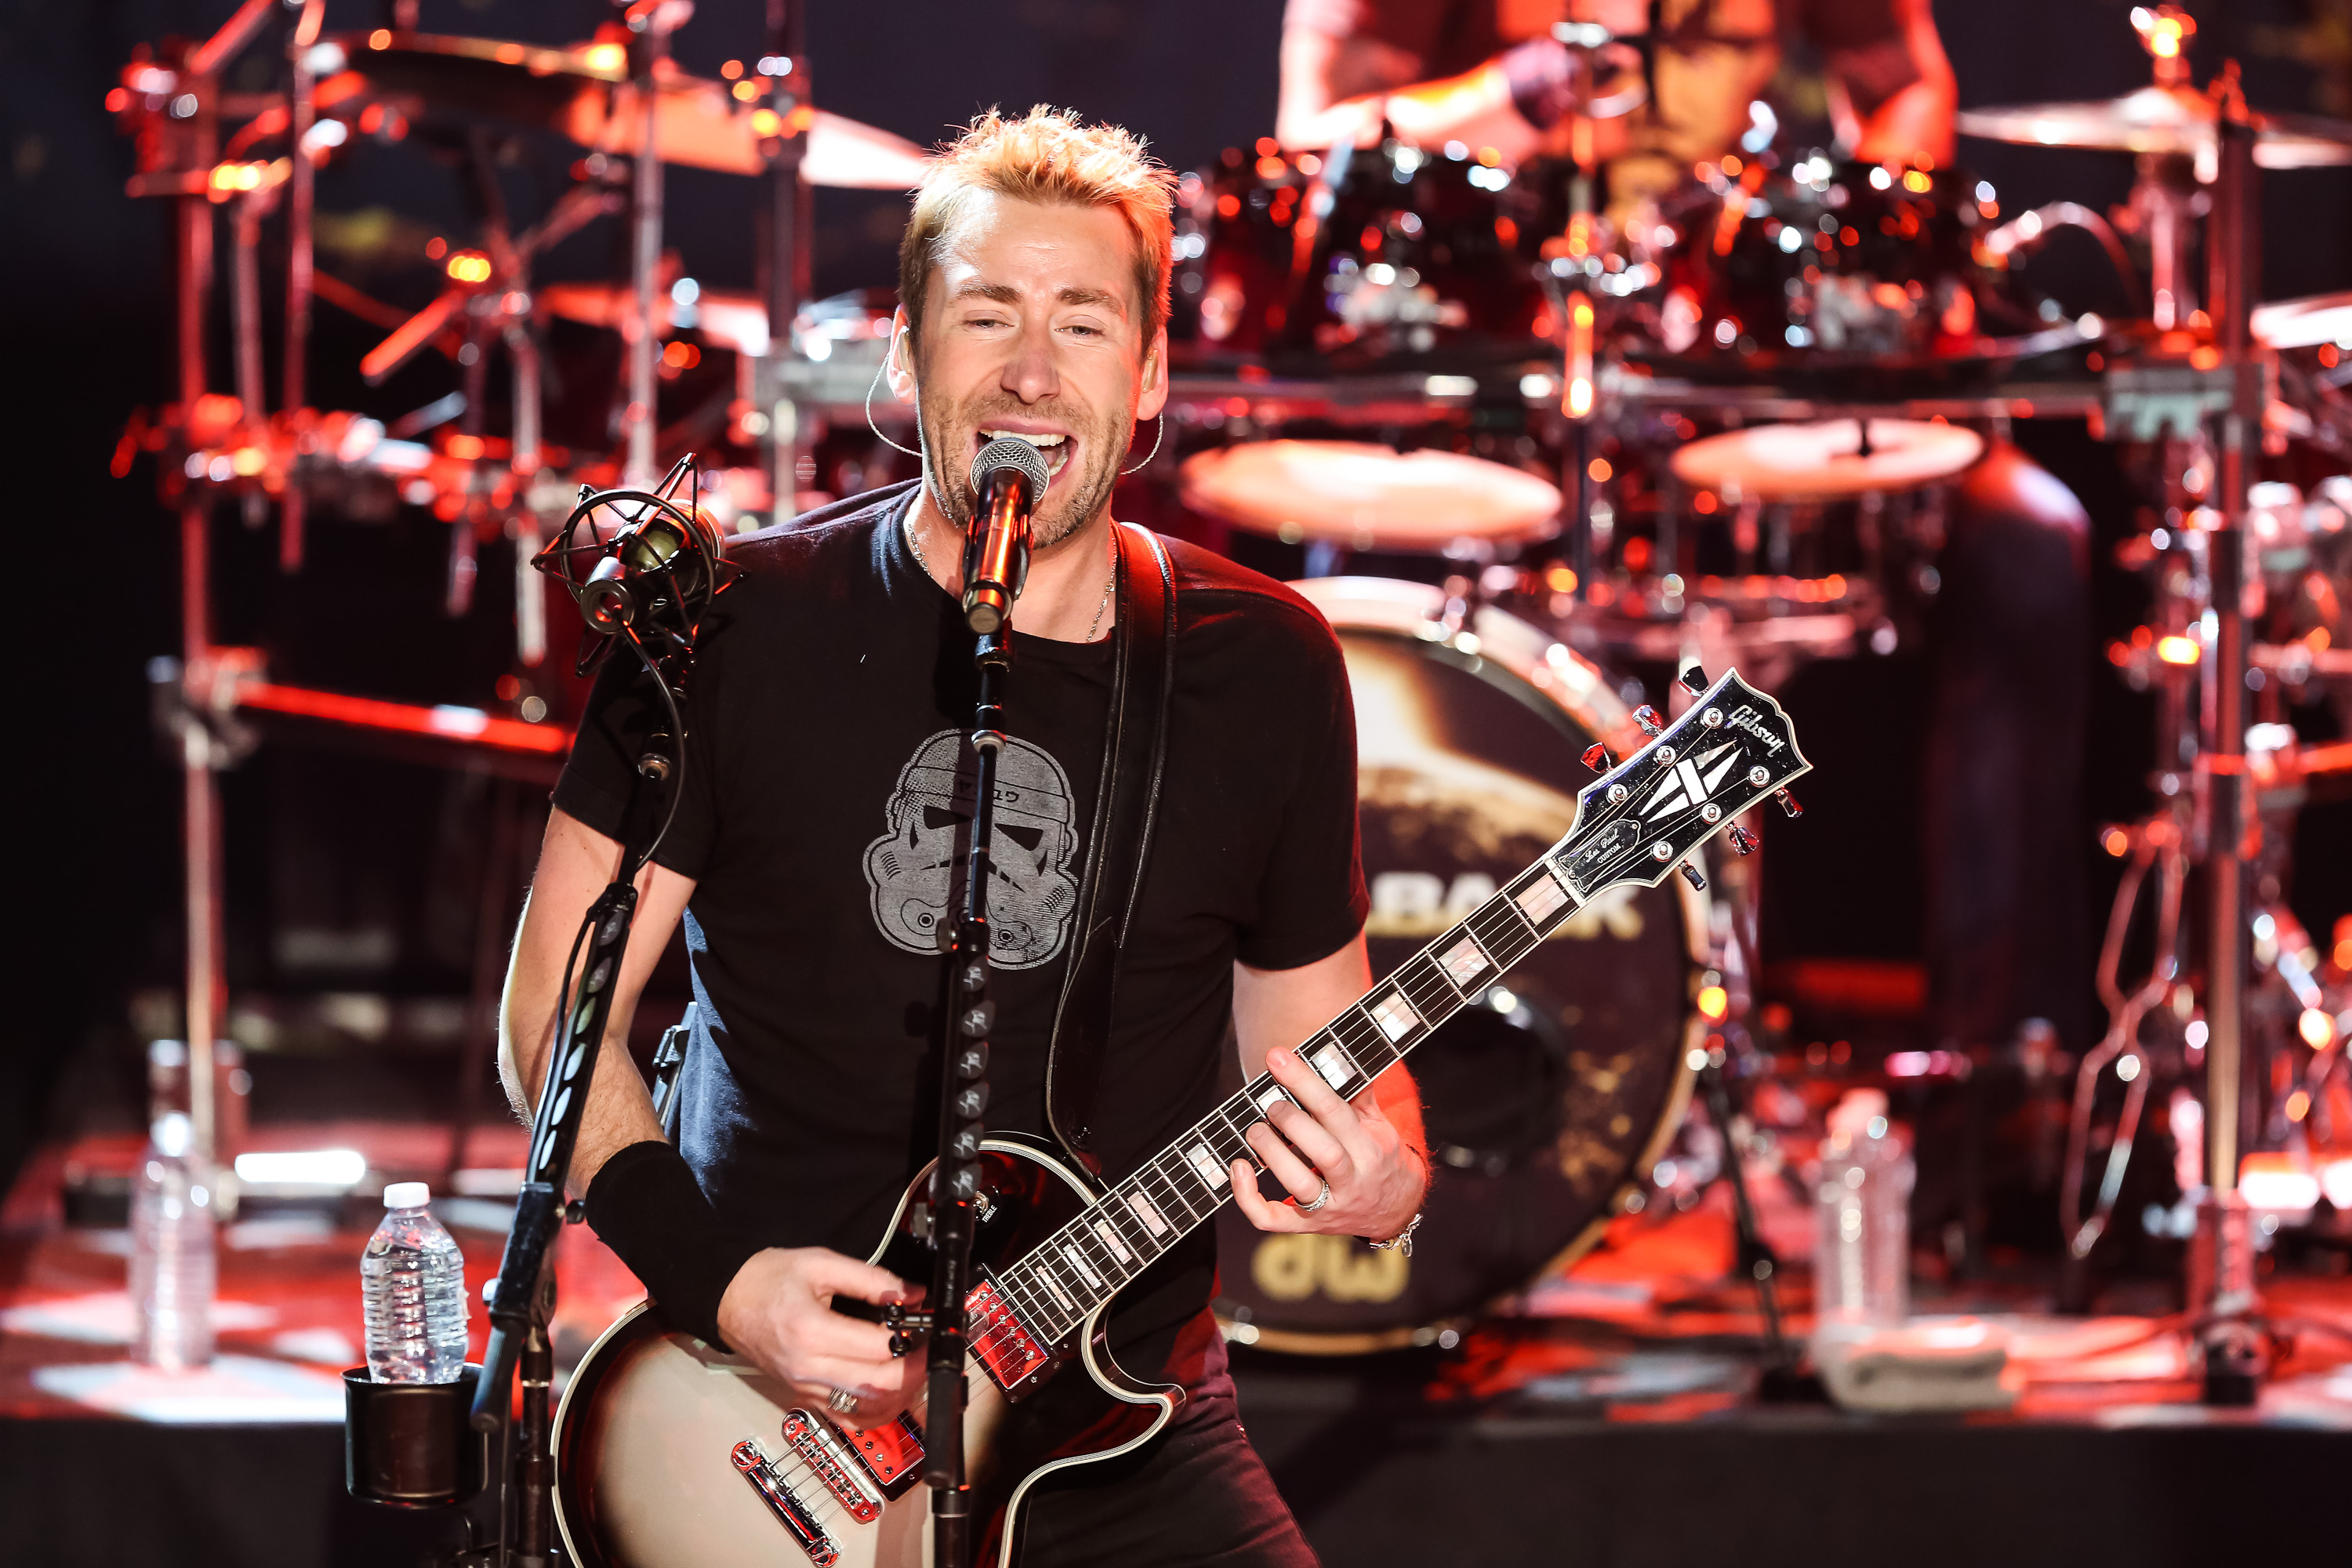 BURBANK, CA - NOVEMBER 18:  Musician Chad Kroeger of Nickelback performs at iHeartRadio Theater on November 18, 2014 in Burba